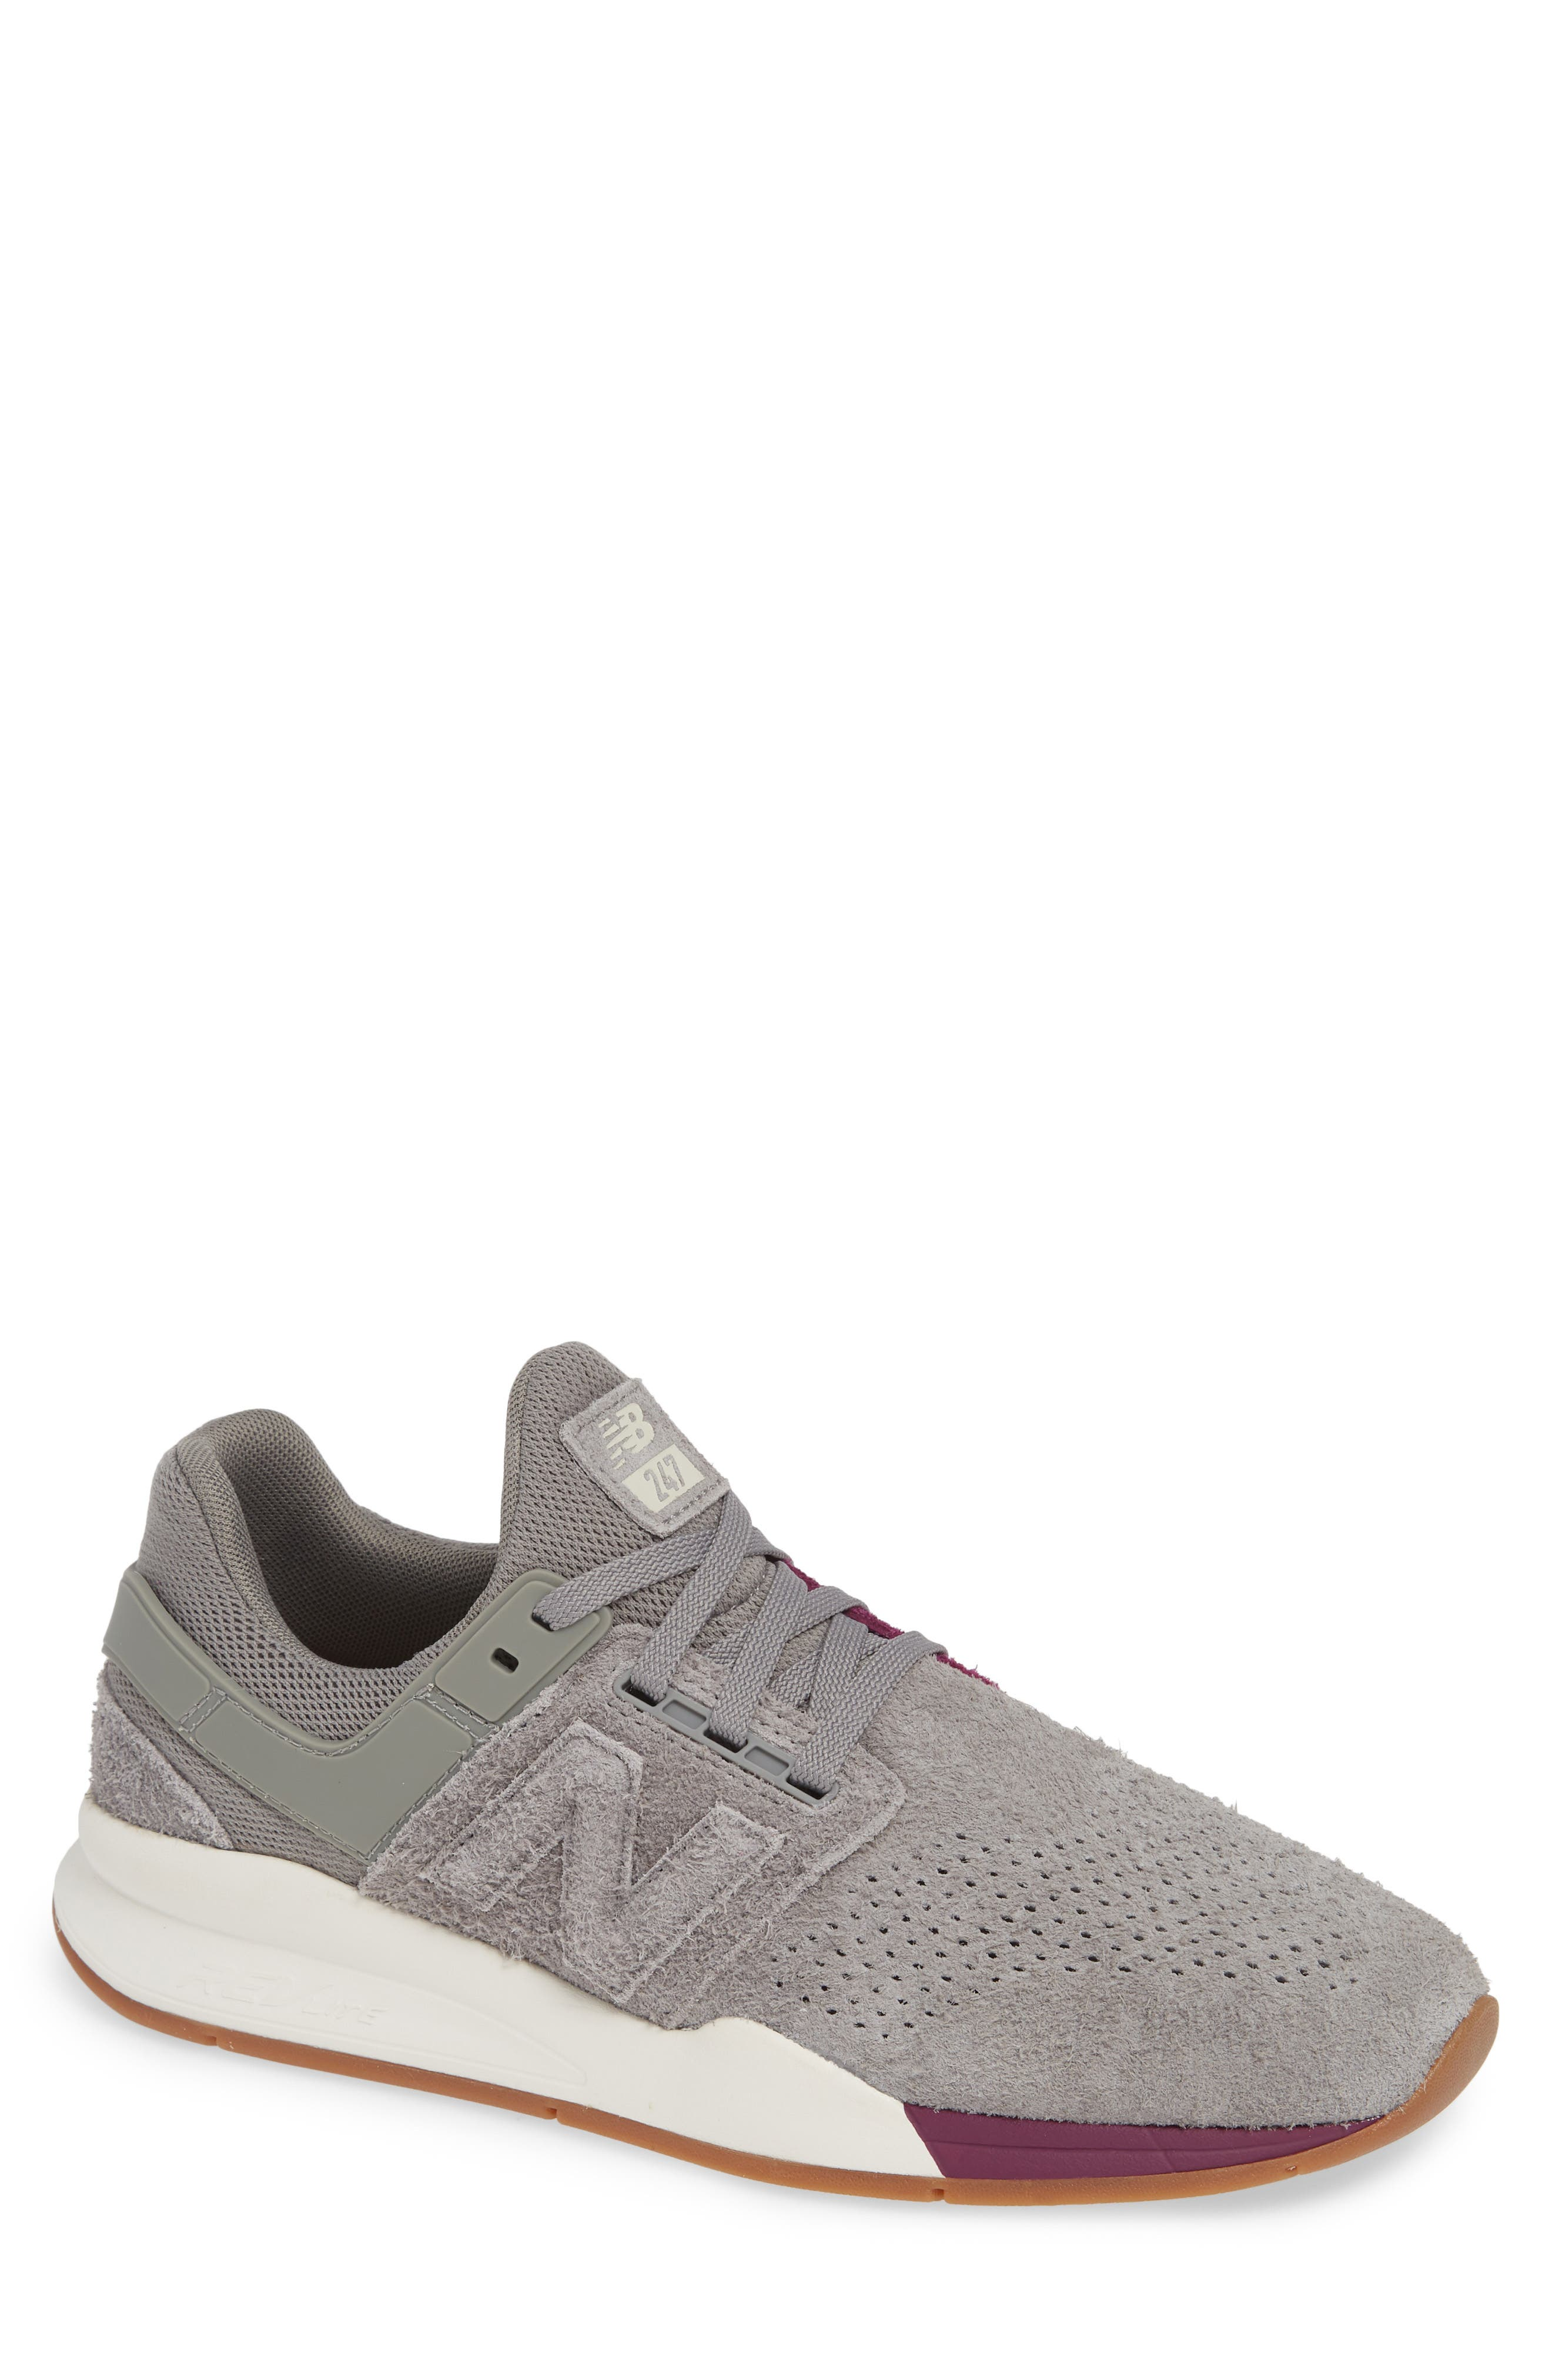 247 Suede Sneaker,                             Main thumbnail 1, color,                             MARBLEHEAD SUEDE